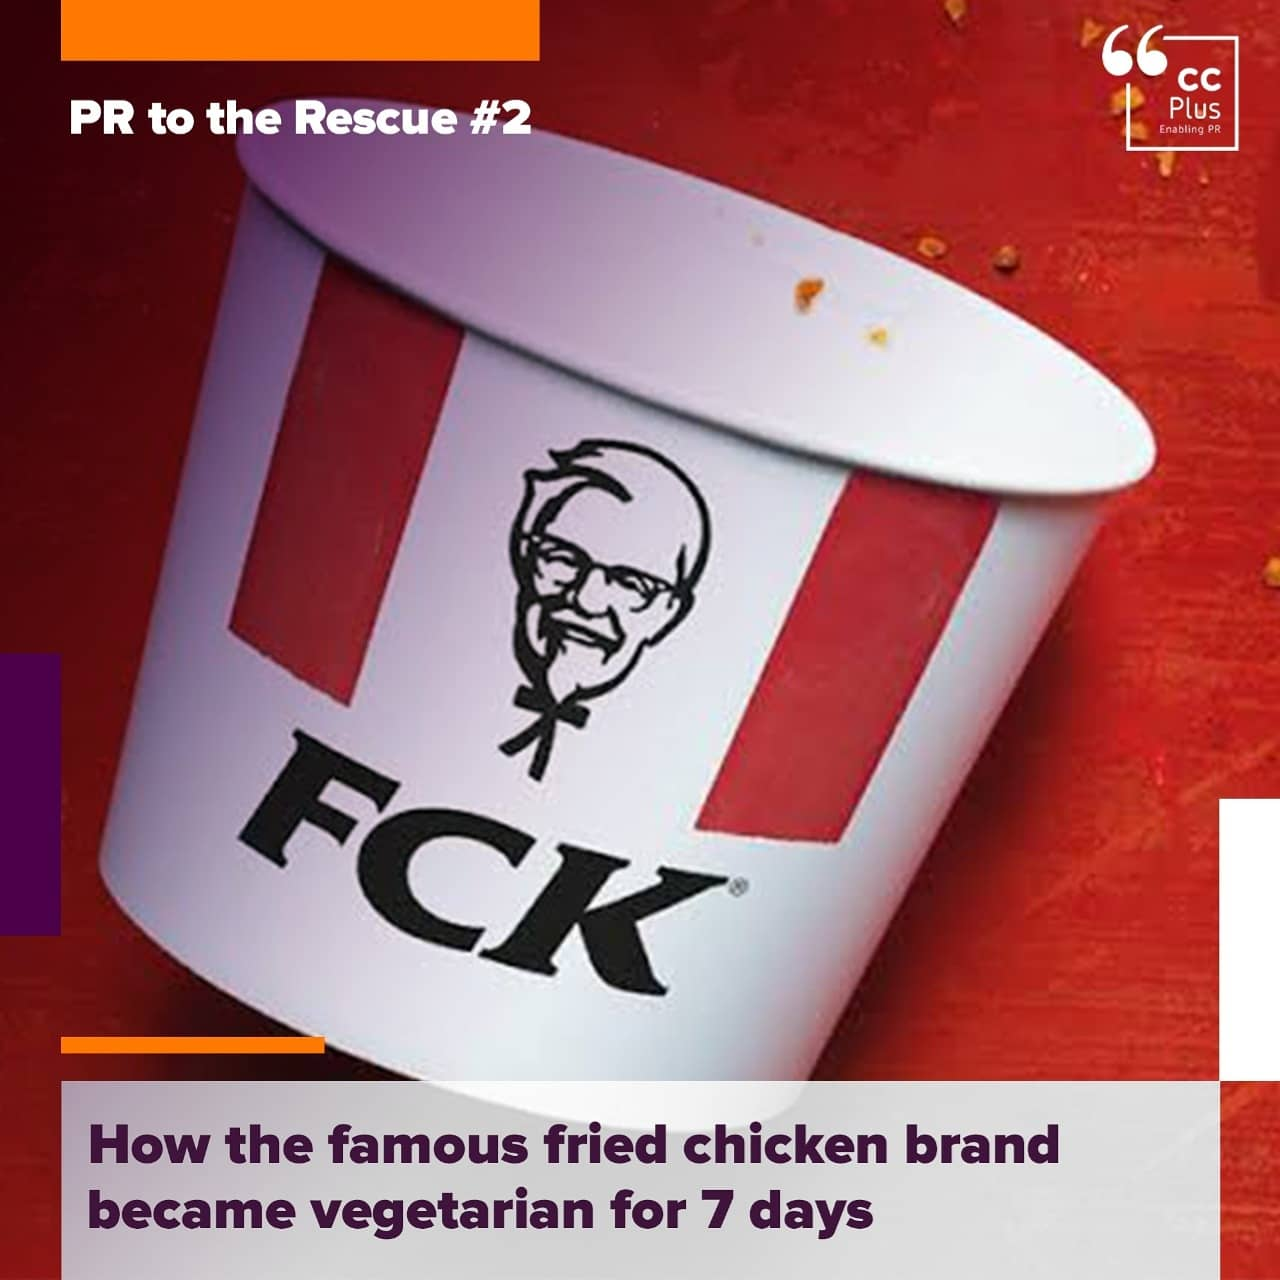 PR to the Rescue #2: How the famous fried chicken brand became vegetarian for 7 days